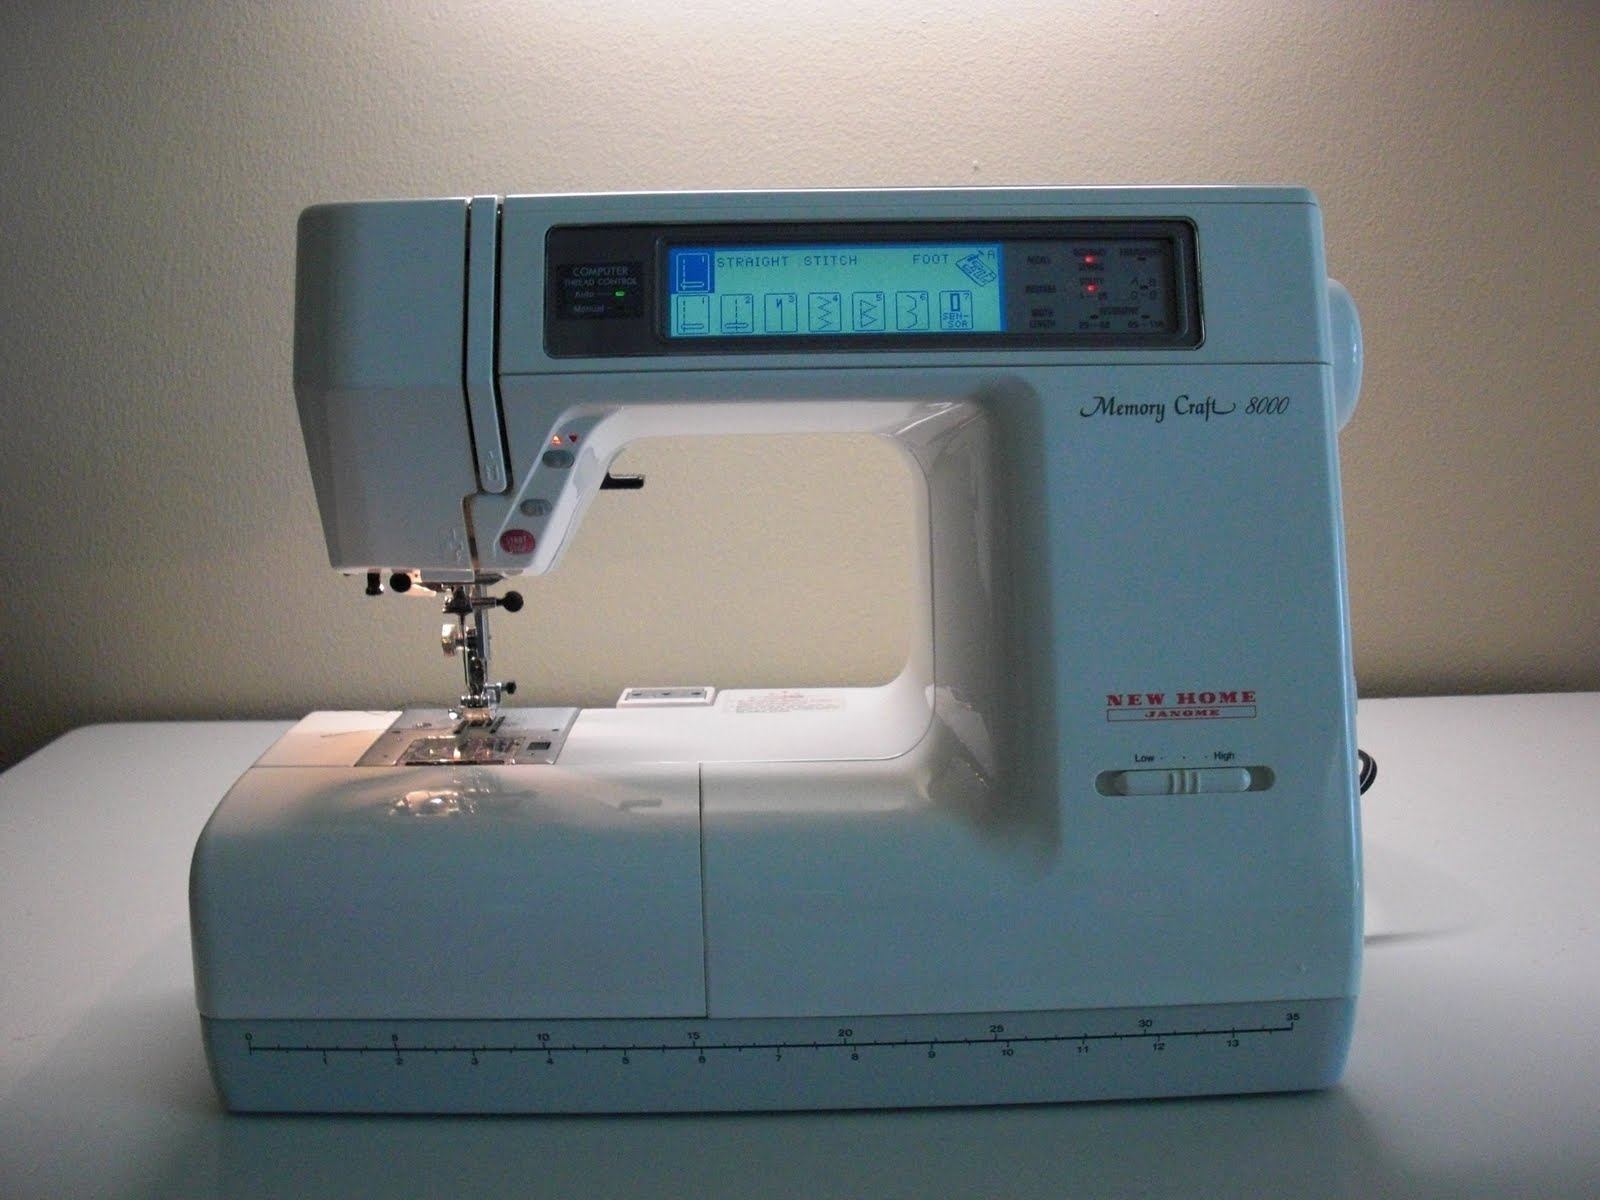 Janome embroidery 8000 free embroidery patterns for Janome memory craft 9000 problems